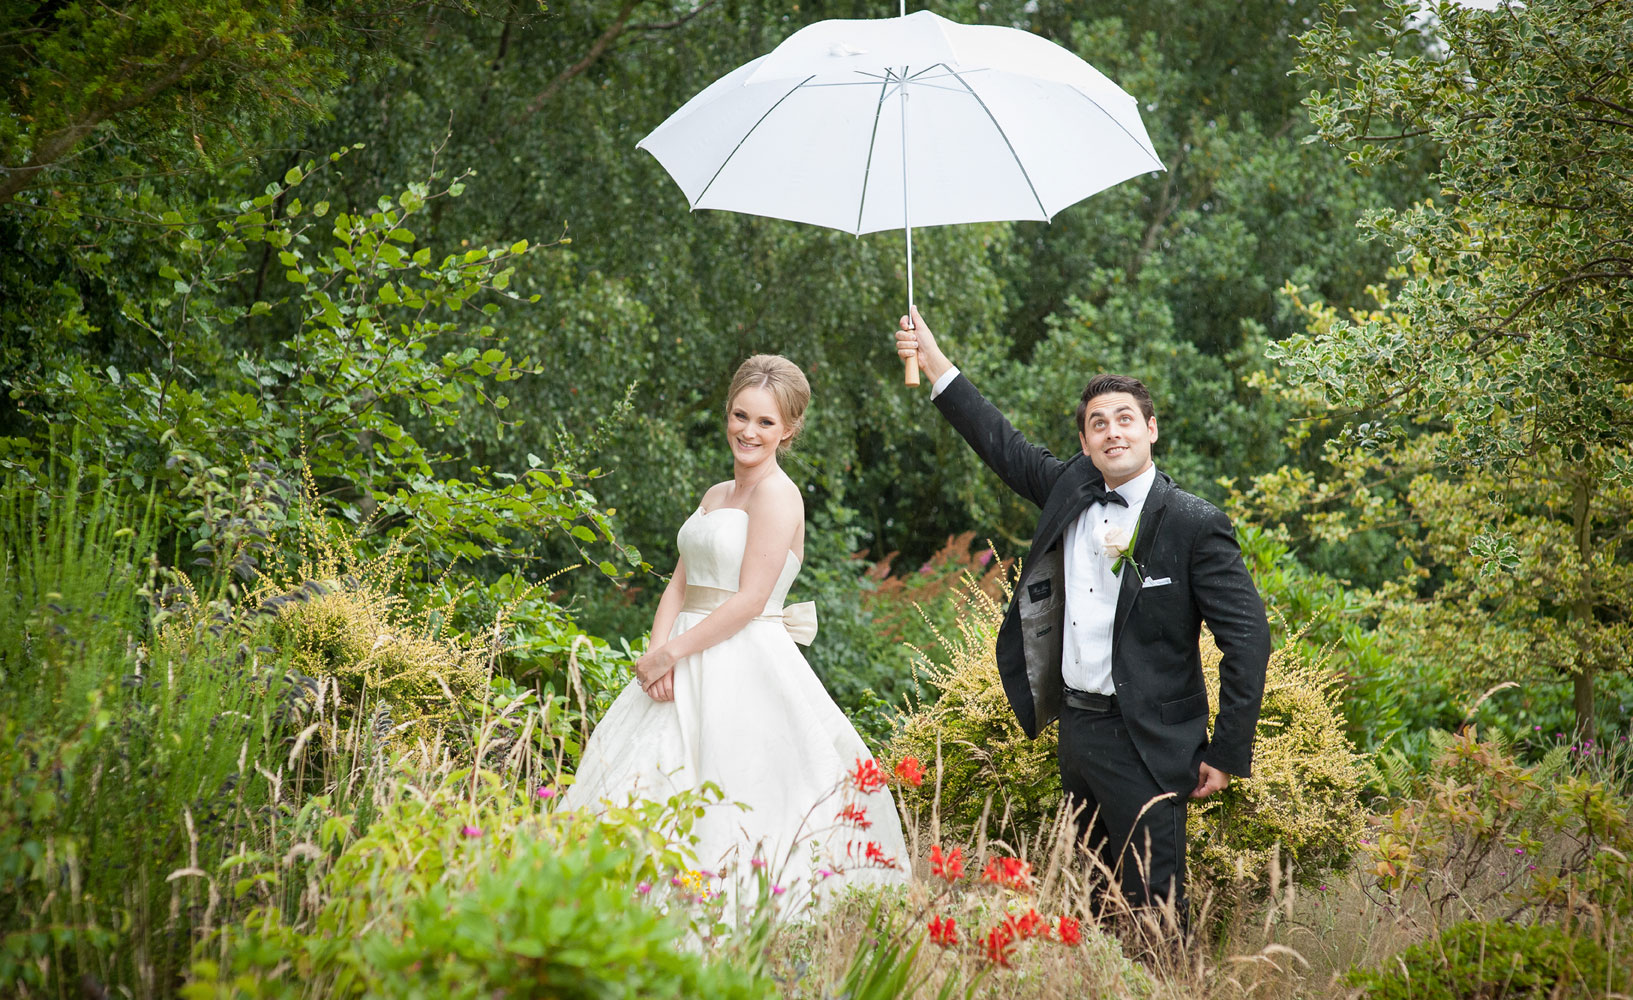 Wedding photographers East Devon